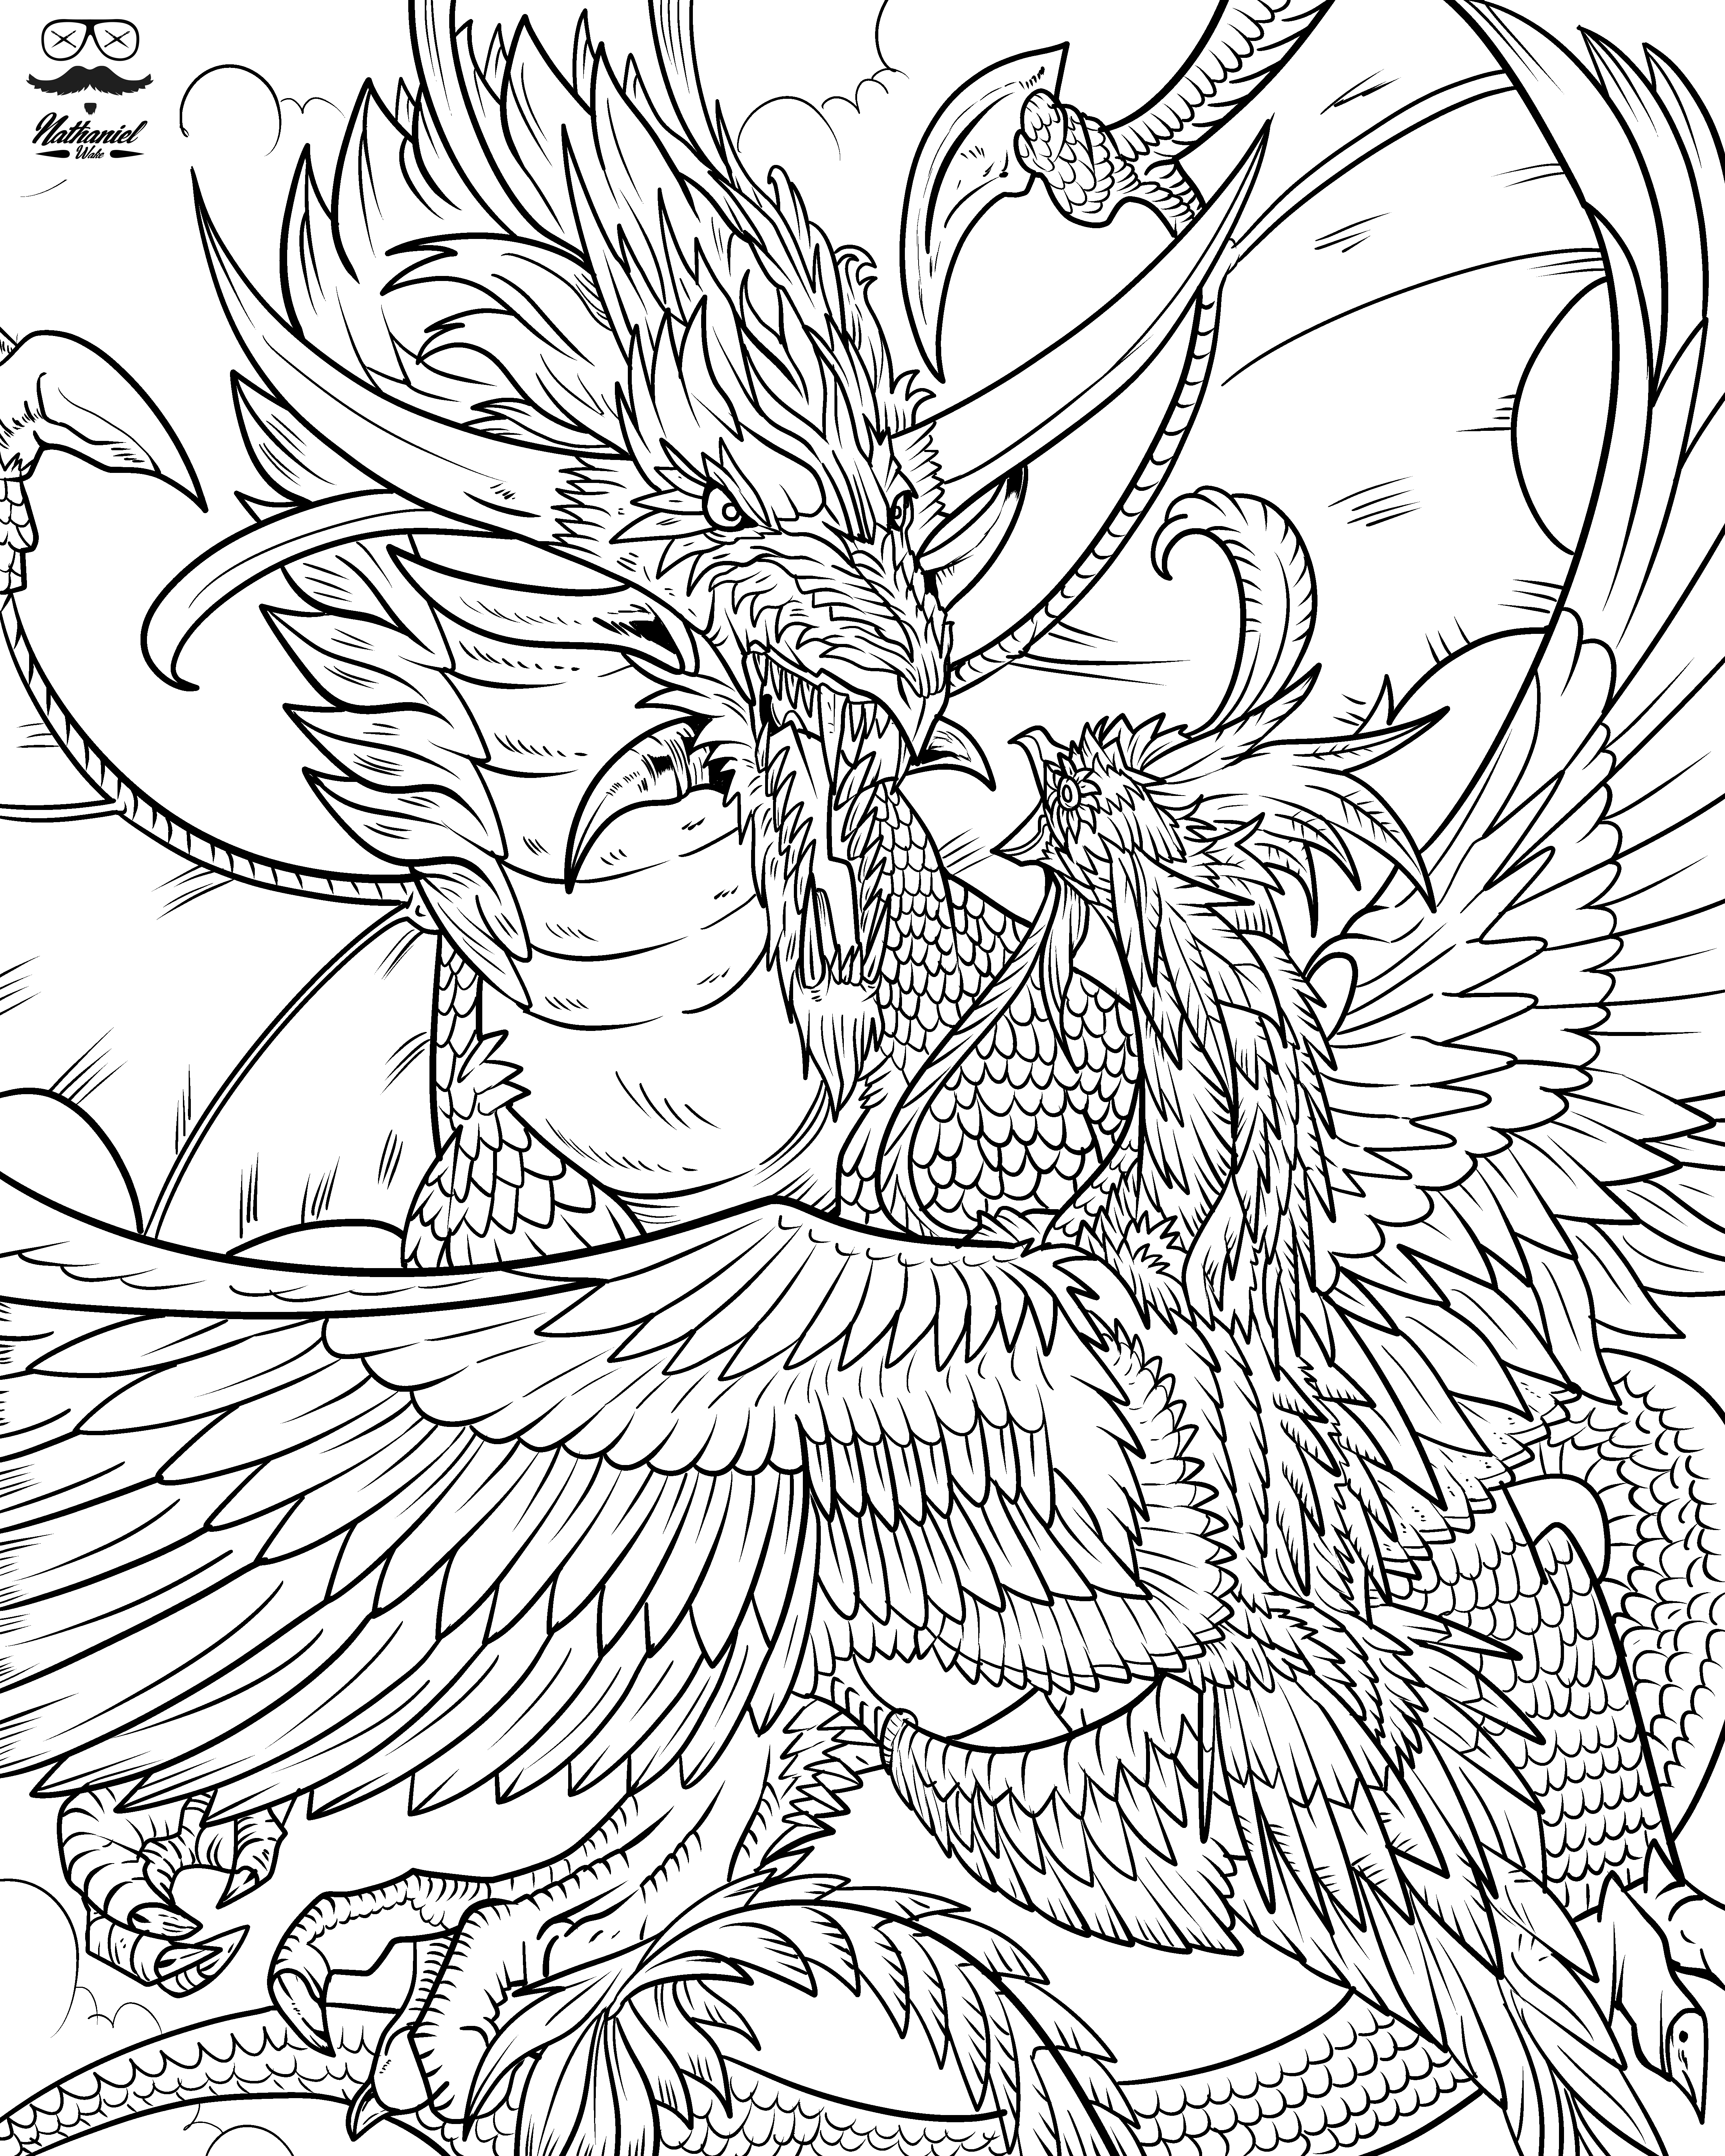 d is for dragon coloring page halloween dragon with pumpkins a printable coloring page coloring for is d page dragon